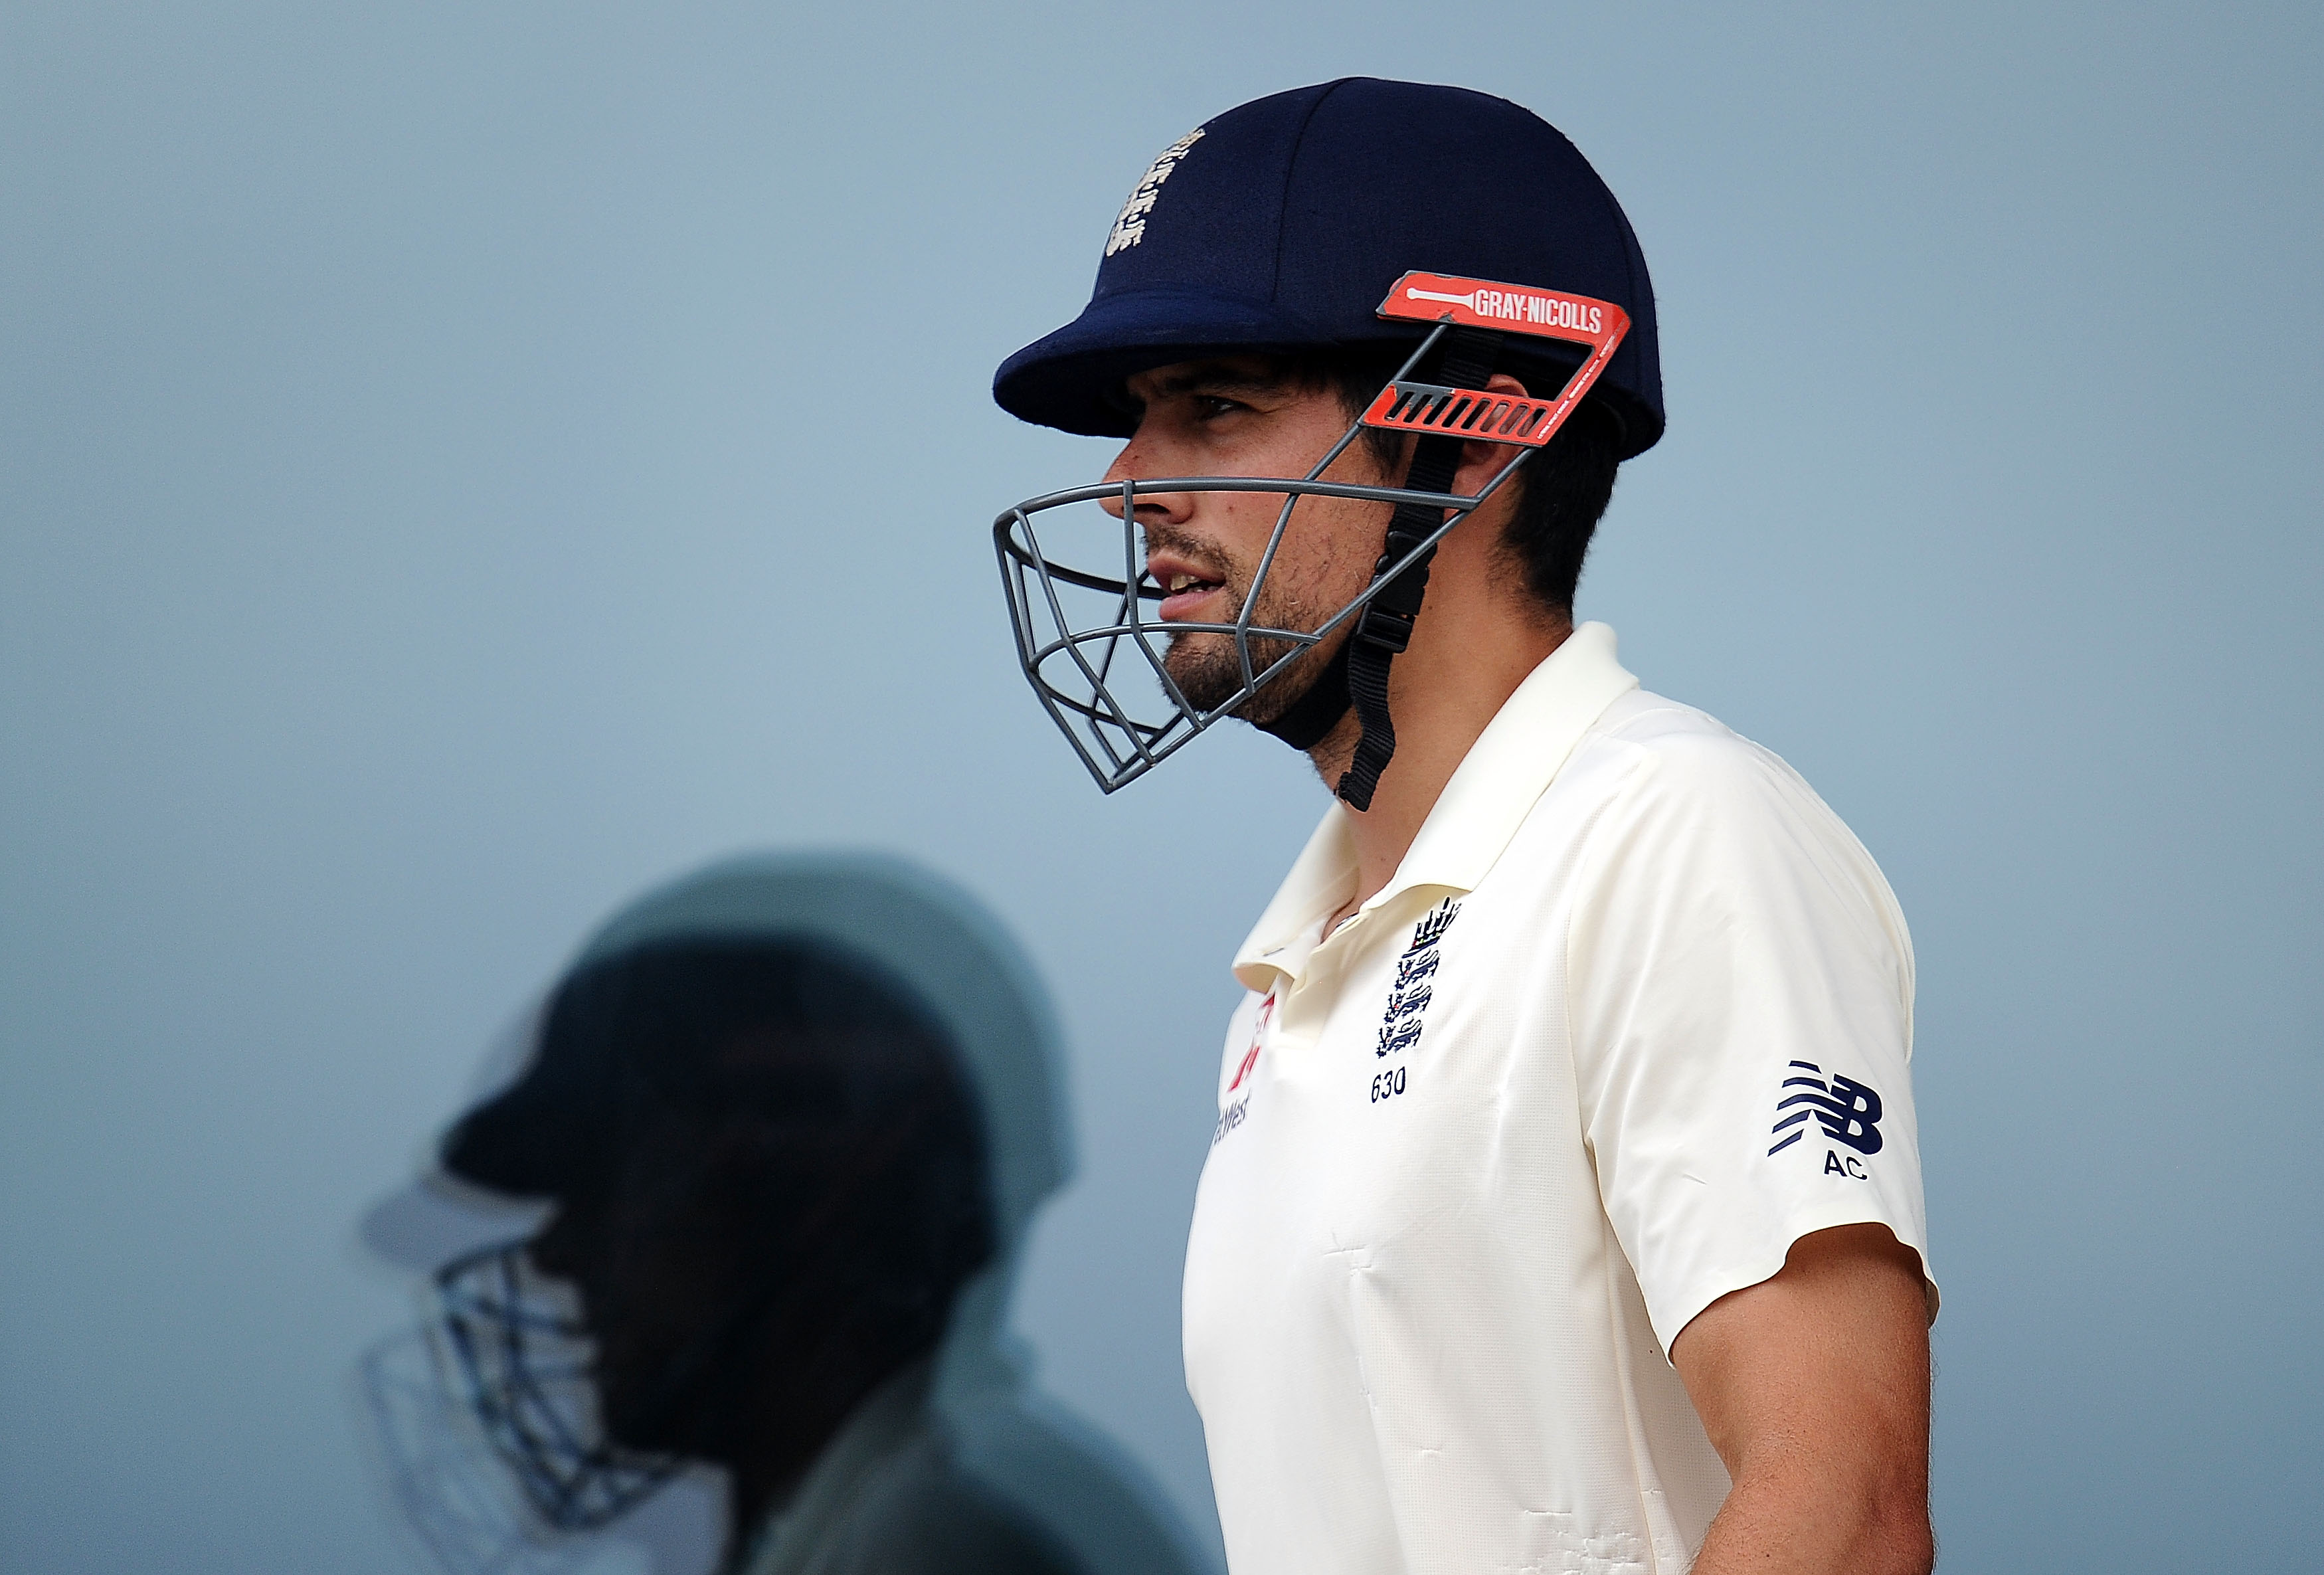 WORCESTER, ENGLAND - JULY 17: Alastair Cook of England Lions walks back to the pavilion after being dismissed for 180 during Day Two of the Tour Match match between England Lions and India A at New Road on July 17, 2018 in Worcester, England. (Photo by Harry Trump/Getty Images)